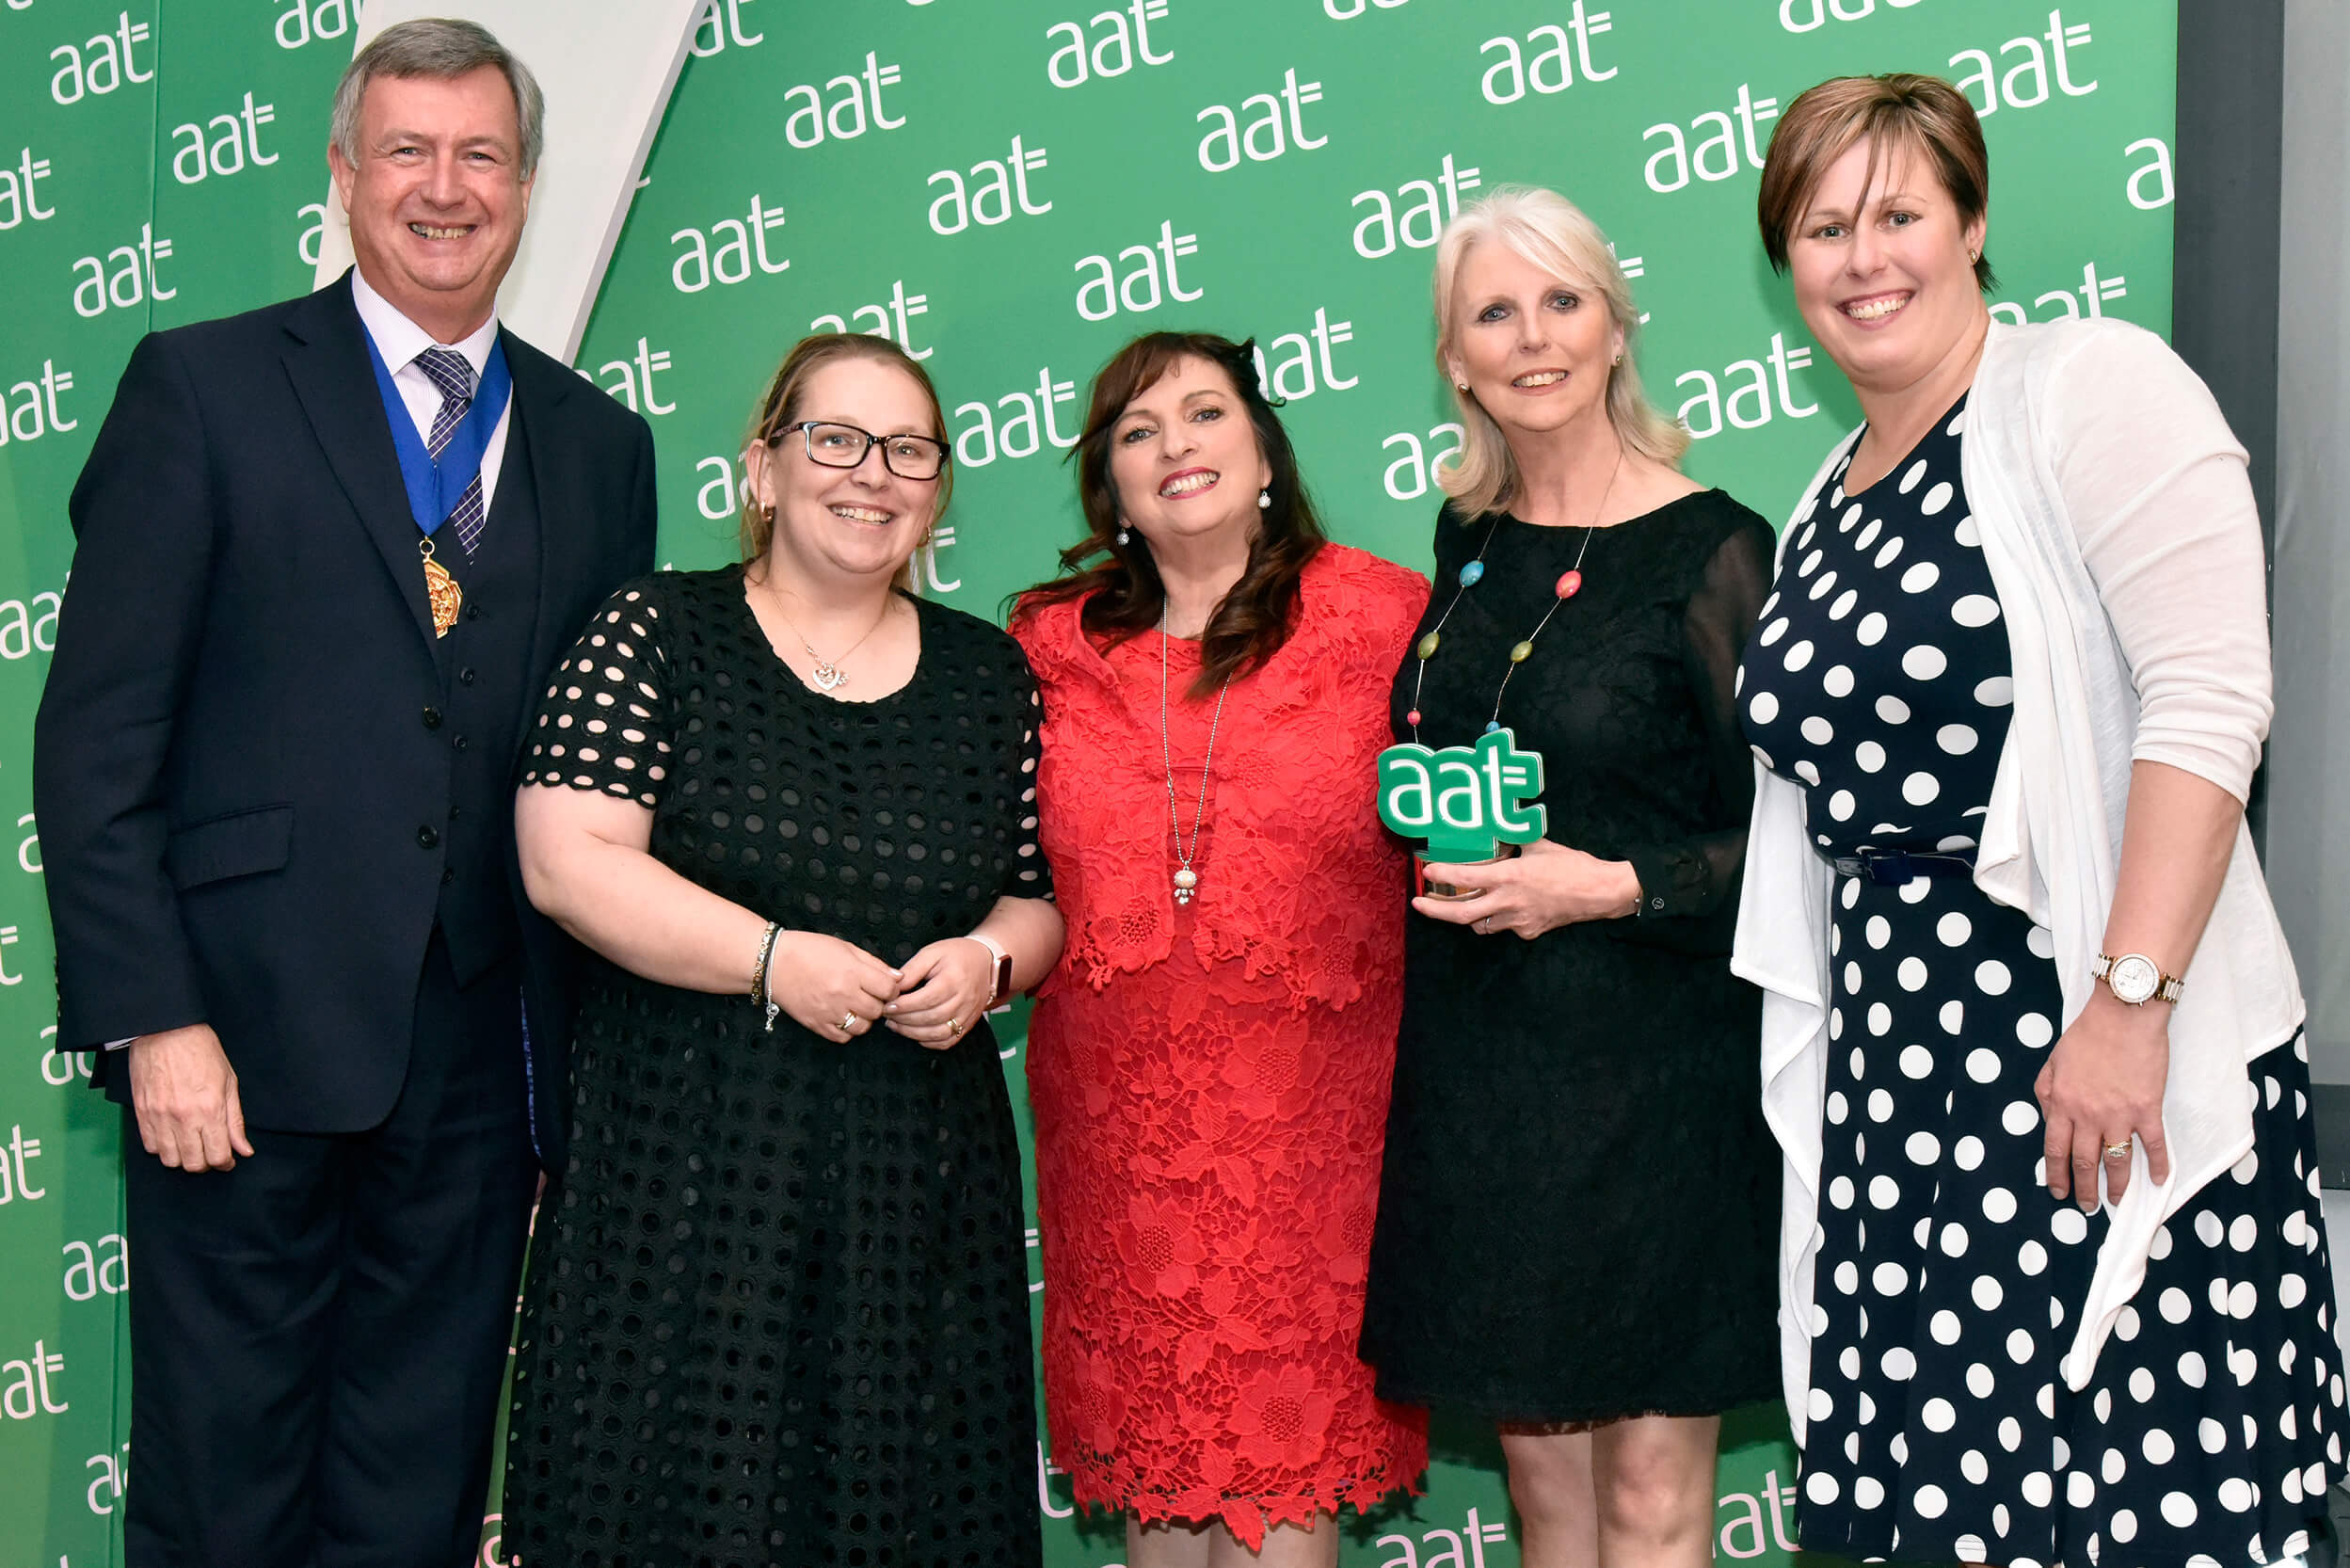 AAT Awards 2017